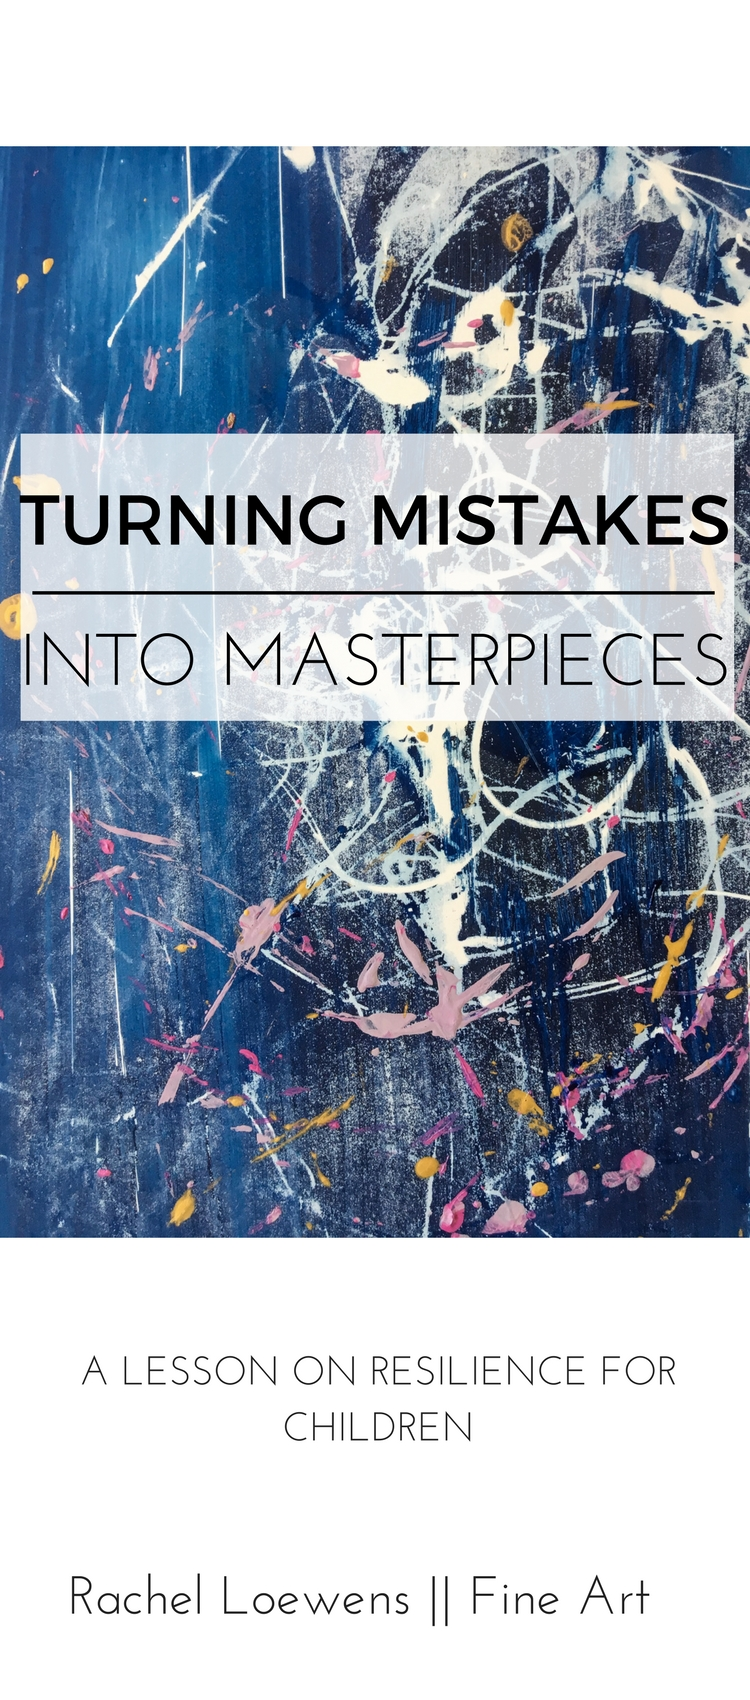 Turning mistakes into masterpieces || a lesson on resilience for children || Rachel Loewens Fine Art